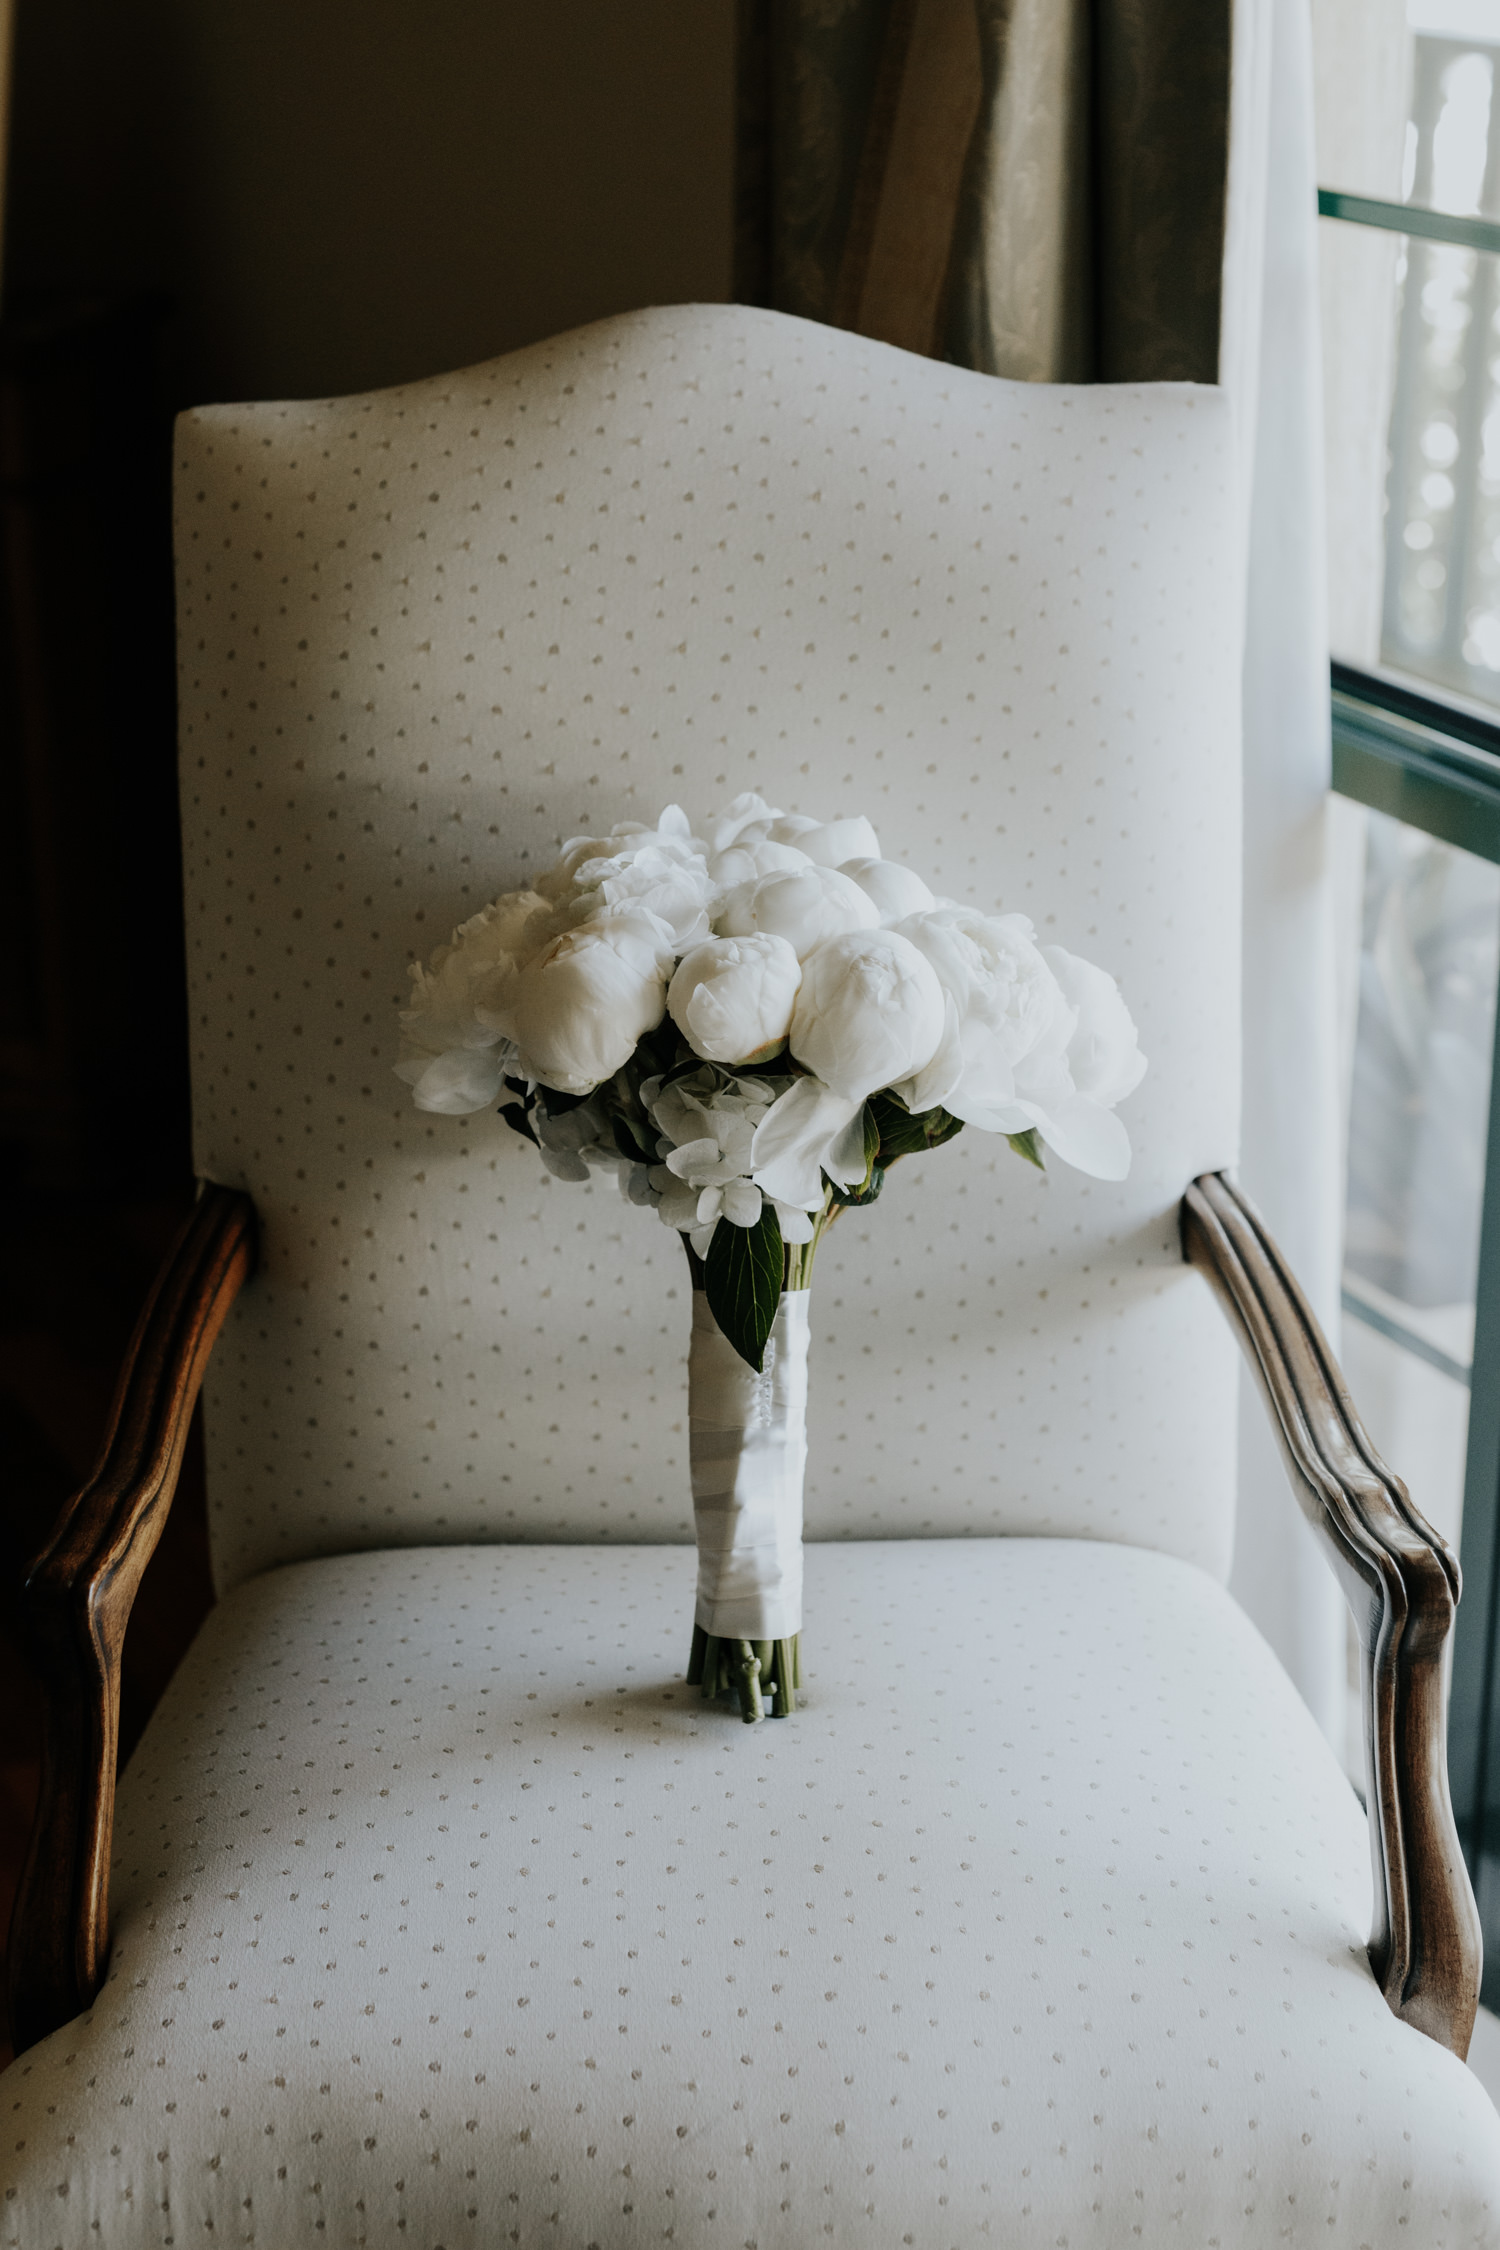 Capital Flowers Canberra / Fitters' Workshop Wedding Canberra : Photography by Jenny Wu Straight No Chaser Photography